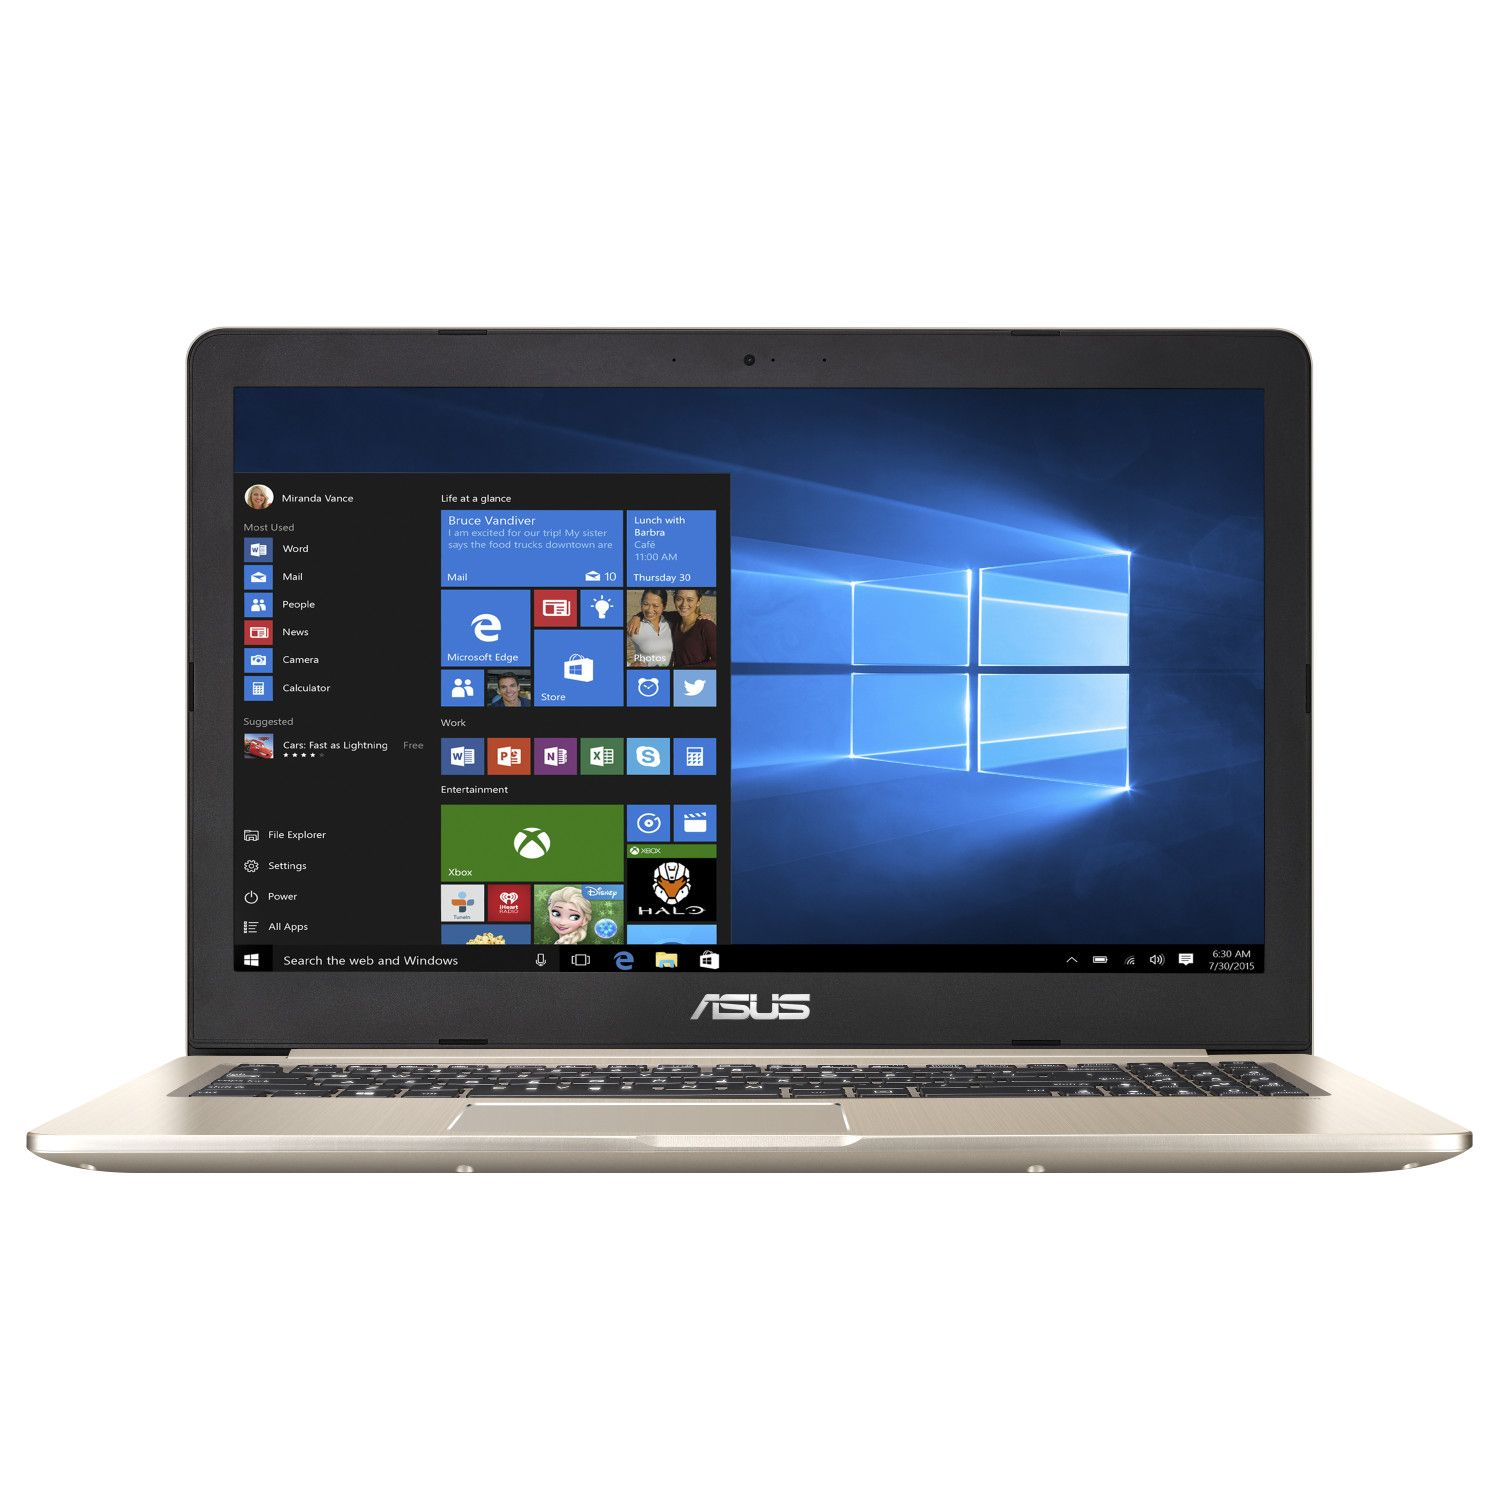 Notebook Asus VivoBook Pro 15 N580VN 15.6 Full HD Intel Core i7-7700HQ MX150-2GB RAM 4GB HDD 1TB No OS Auriu